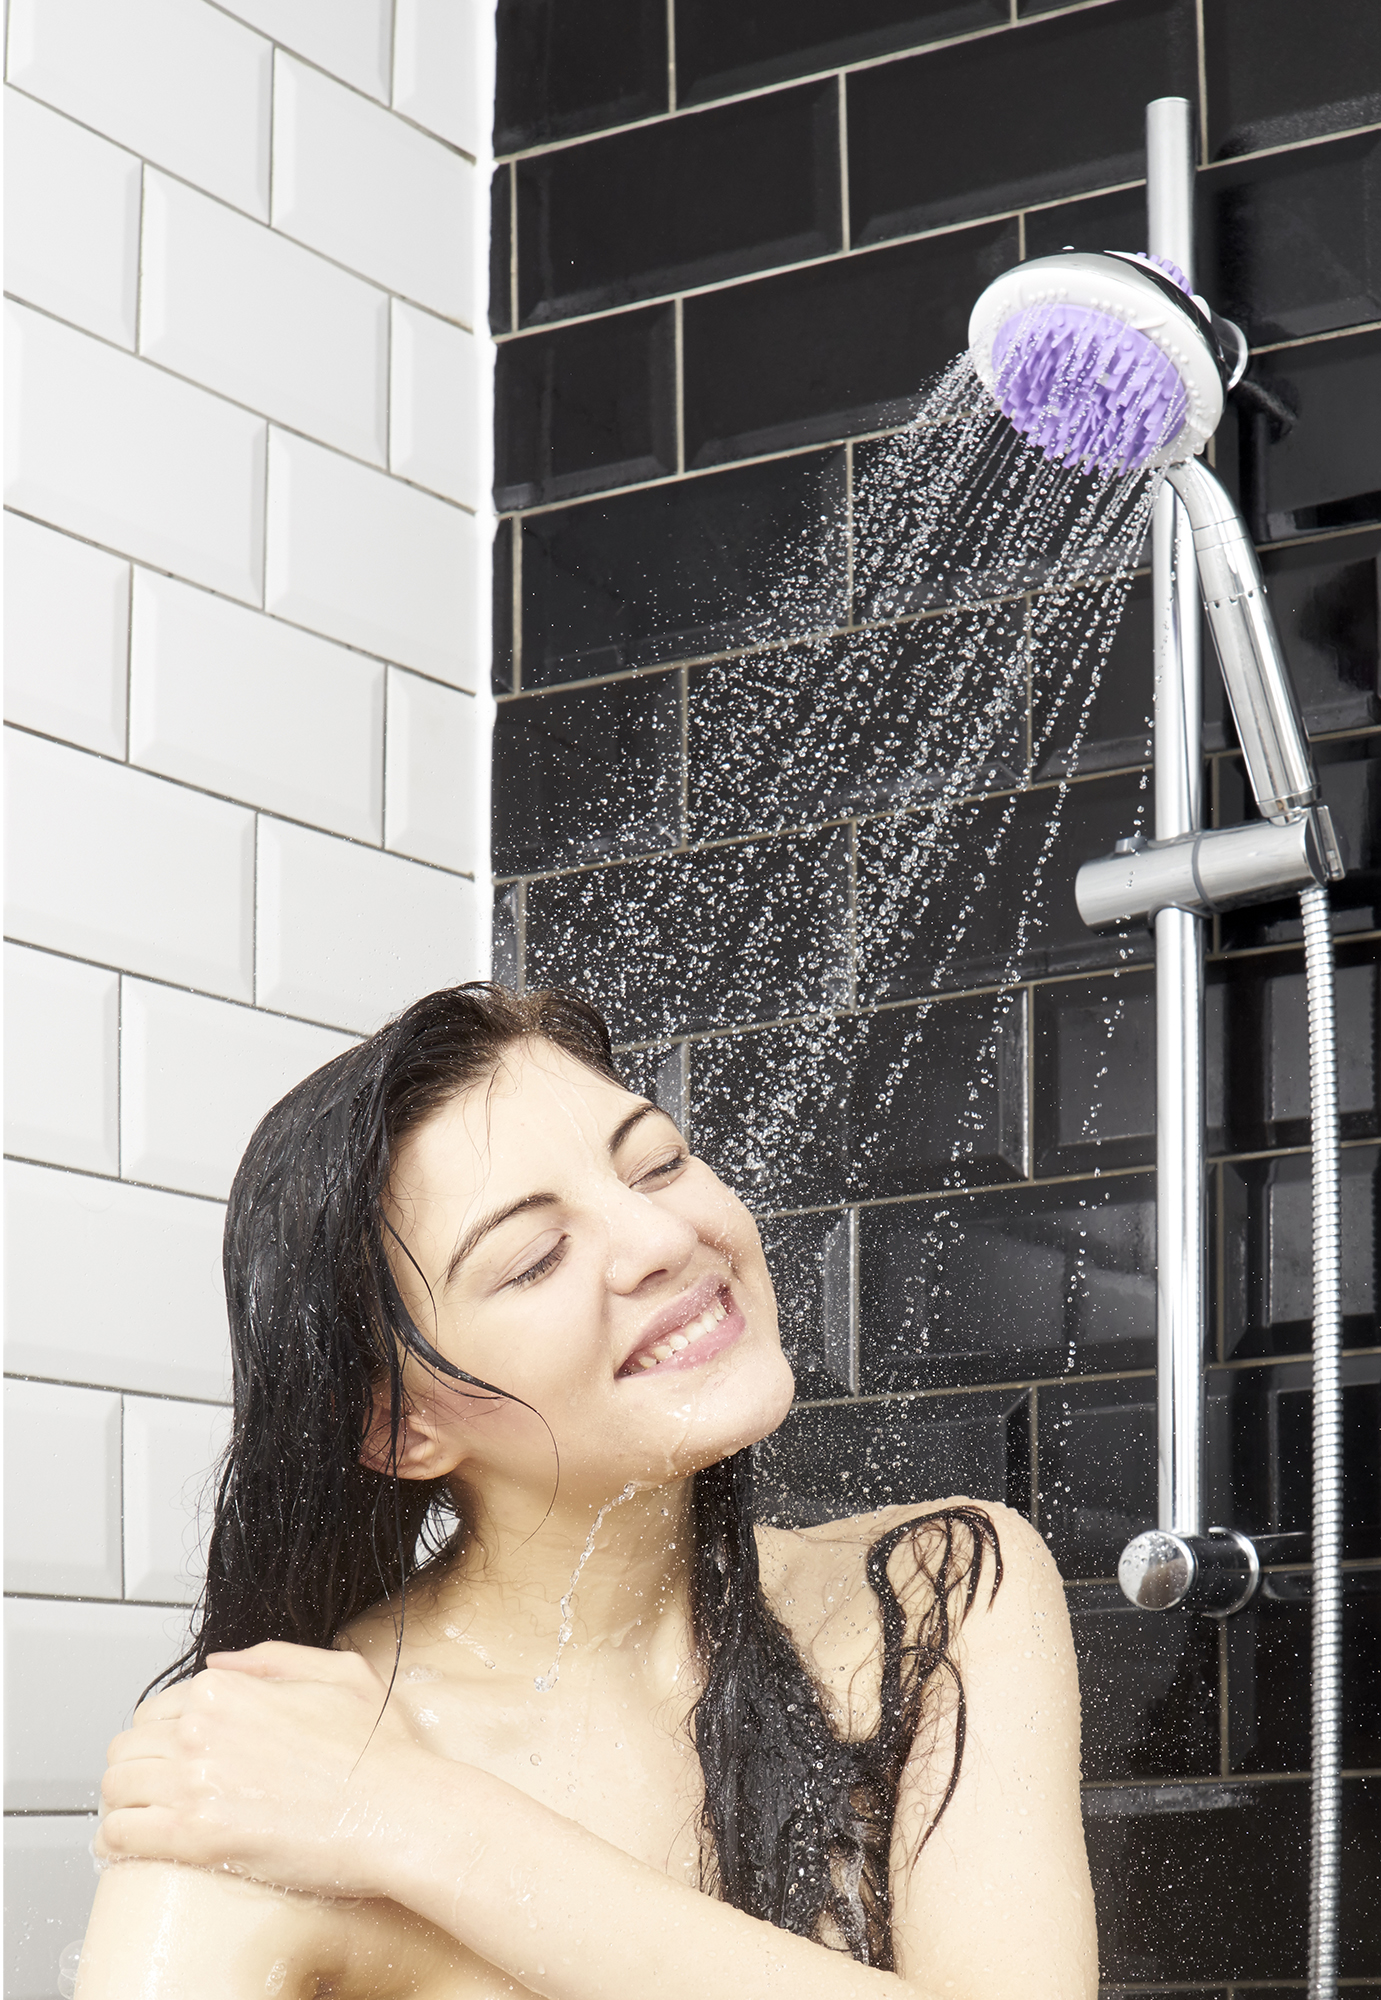 Lifestyle packshot photography, a model in shower with product in bathroom setting, Advertising lifestyle product packshot